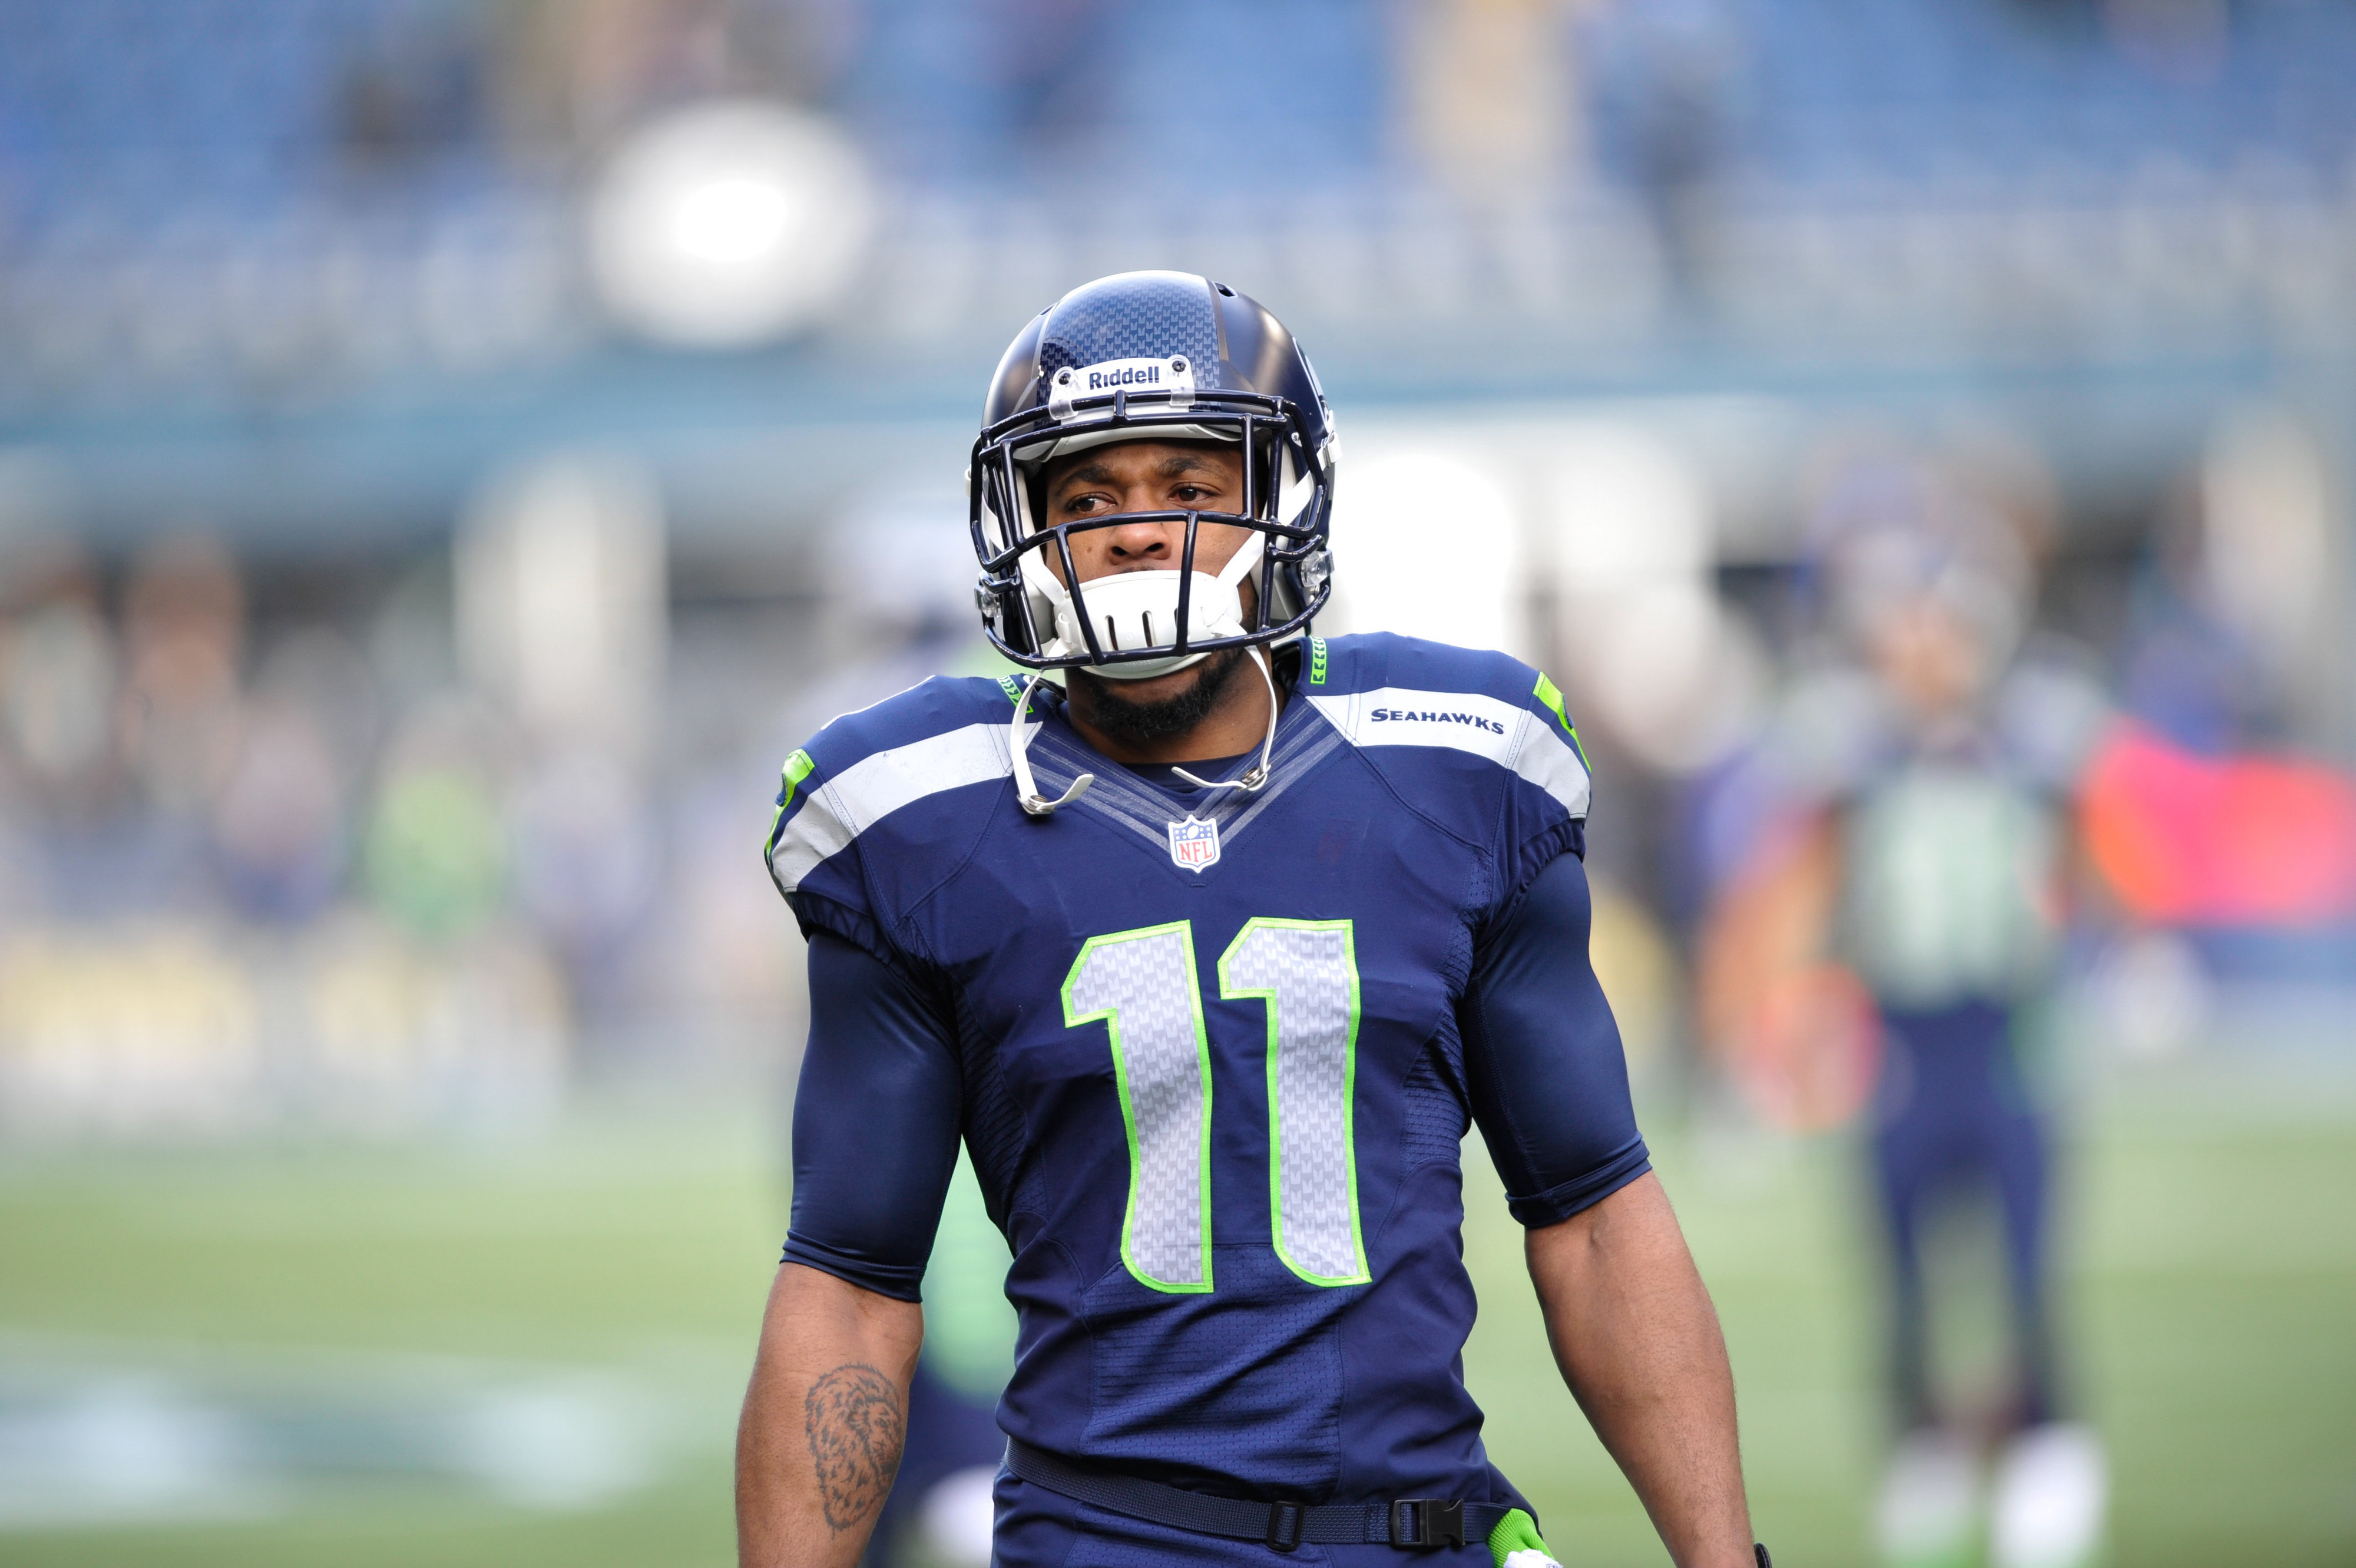 Percy Harvin injury: Seahawks WR will have no limitations in Super Bowl